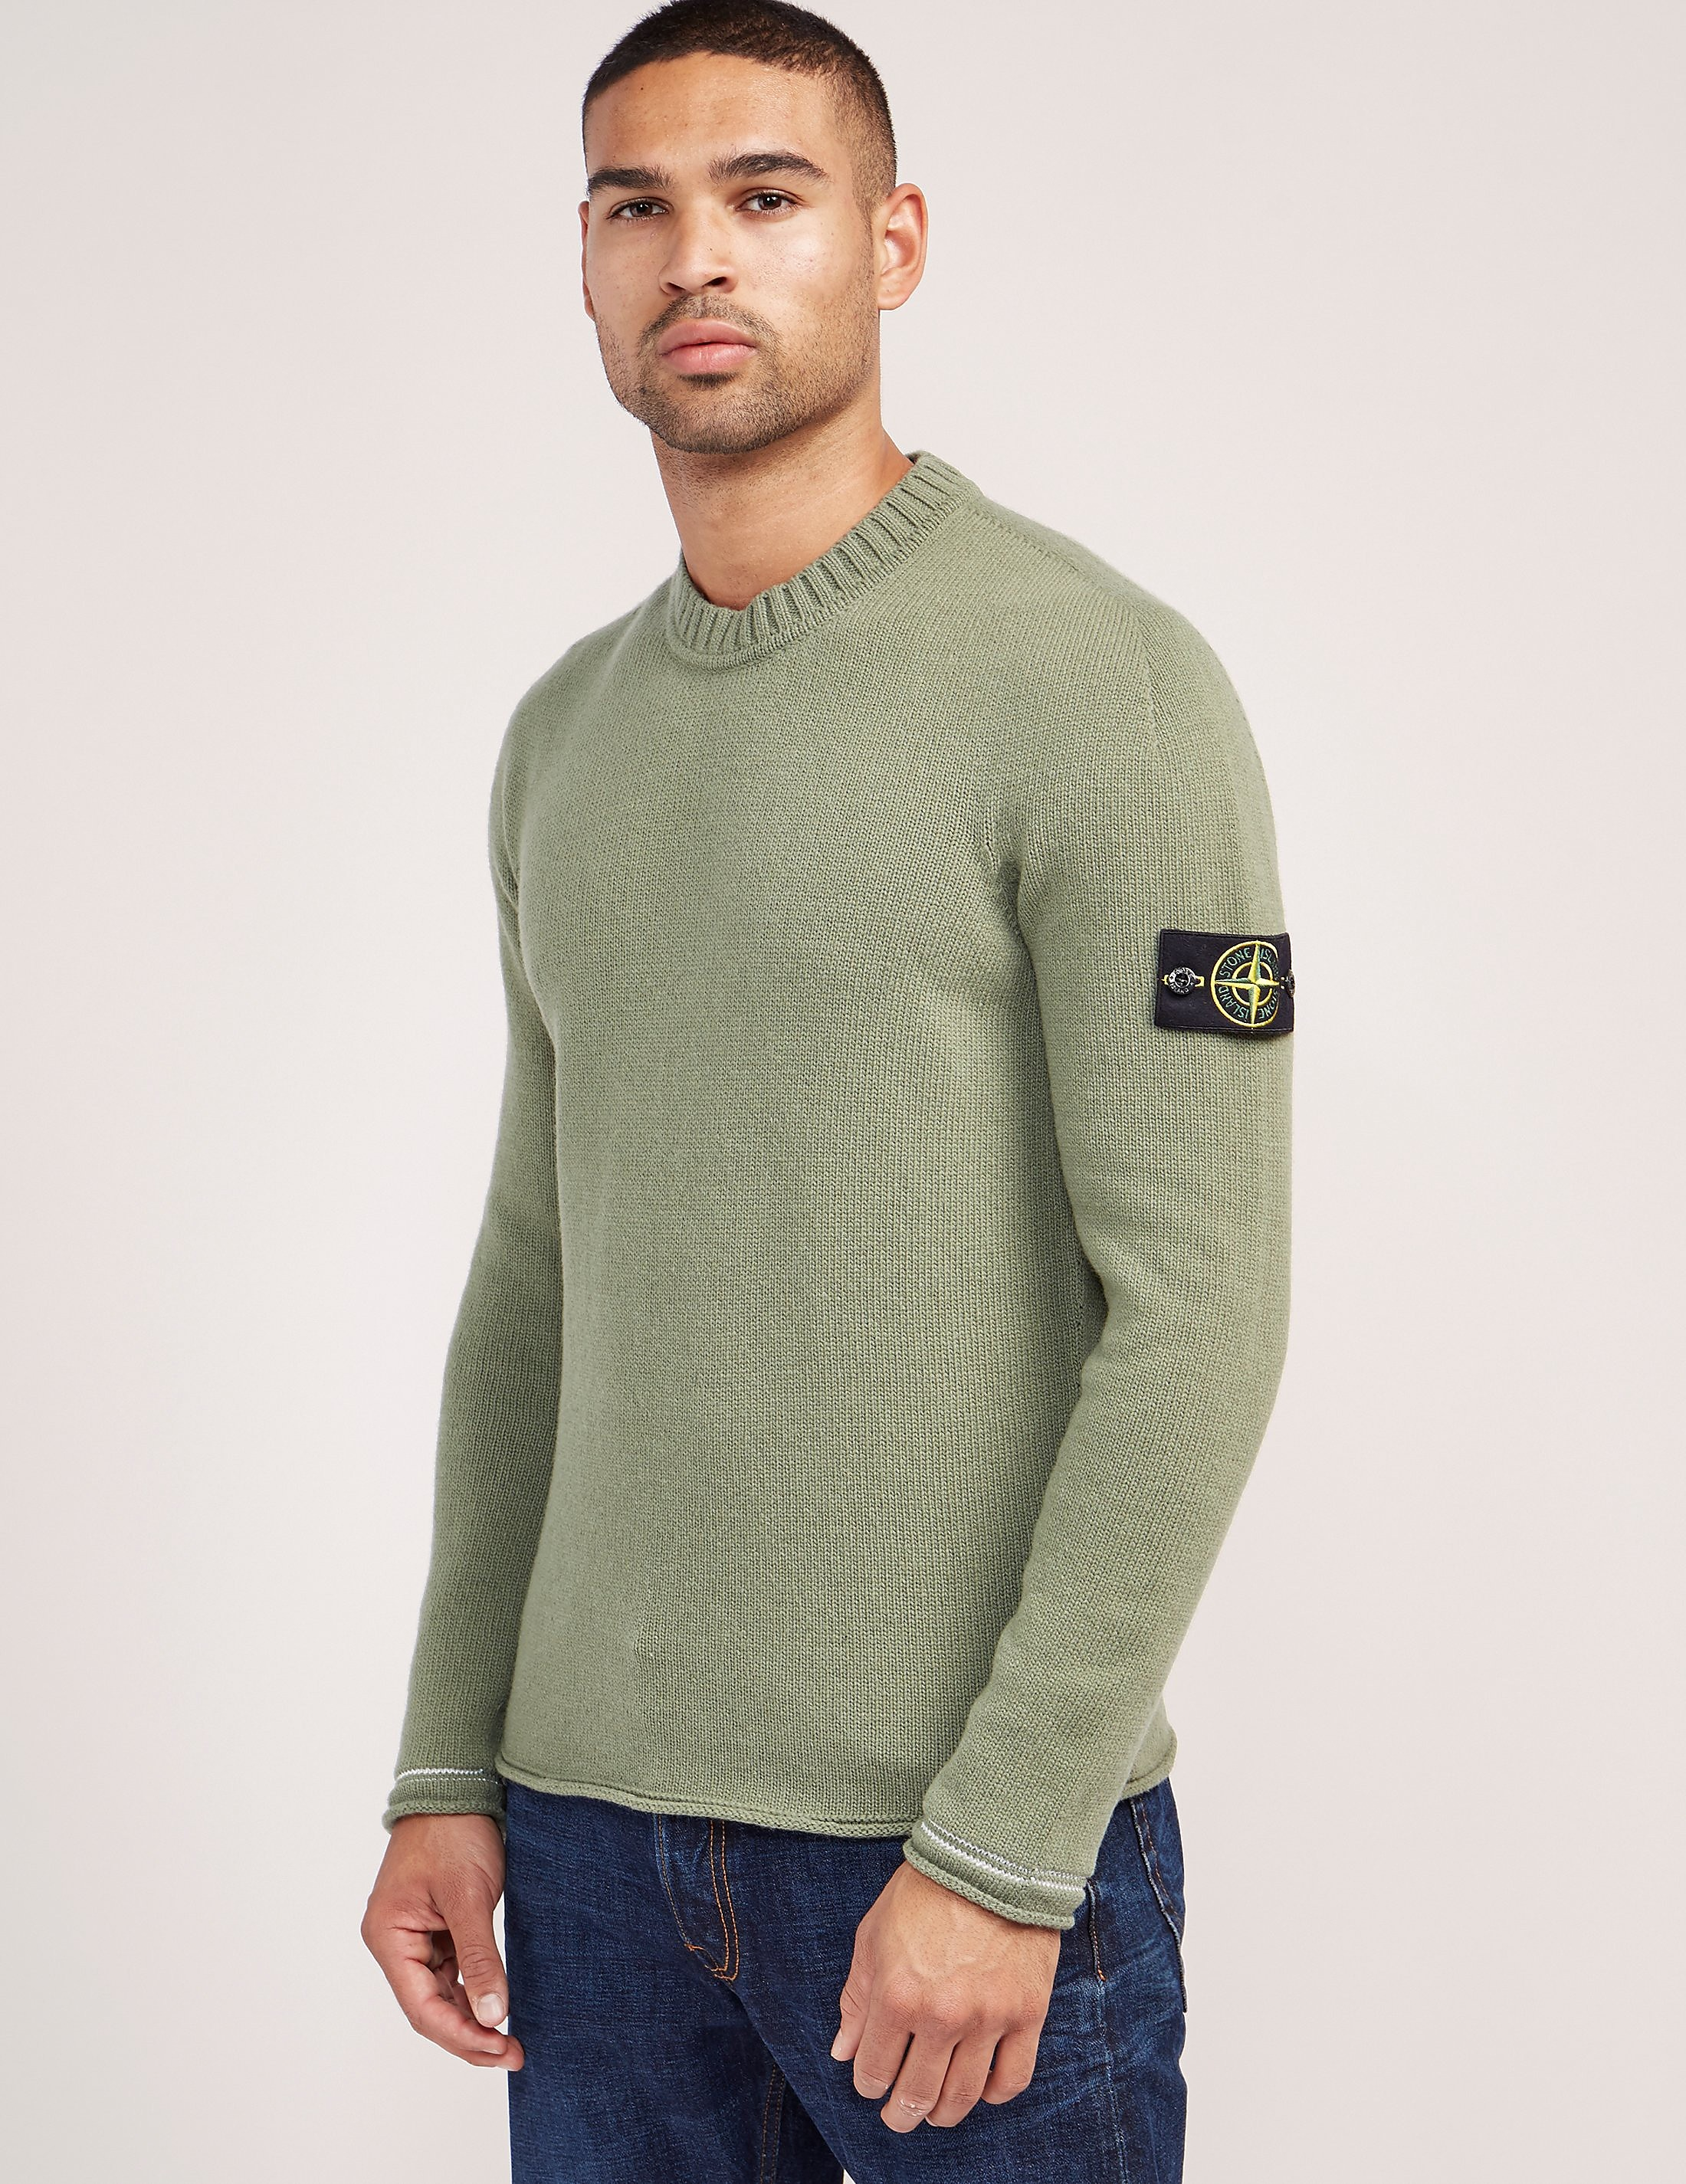 Stone Island Tipped Crew Knitted Jumper